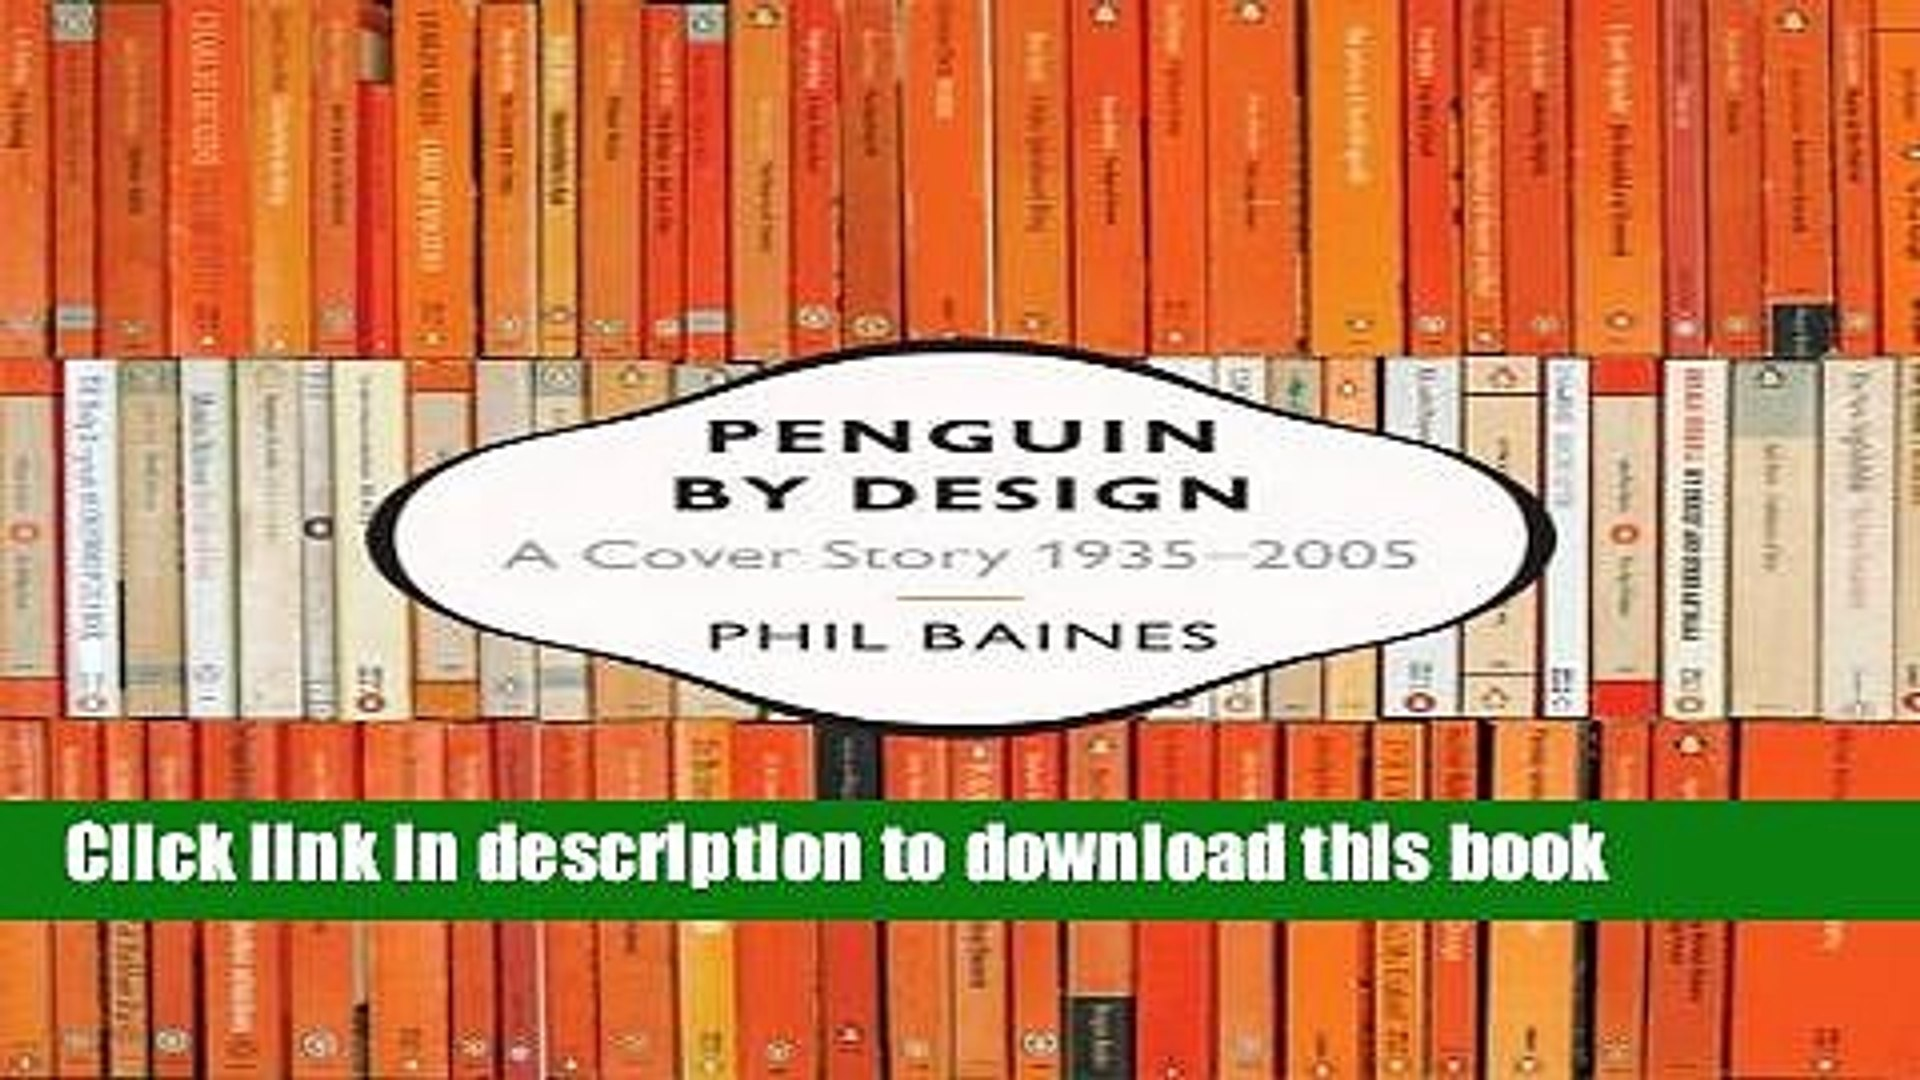 A Cover Story 1935 To 2005 Penguin By Design